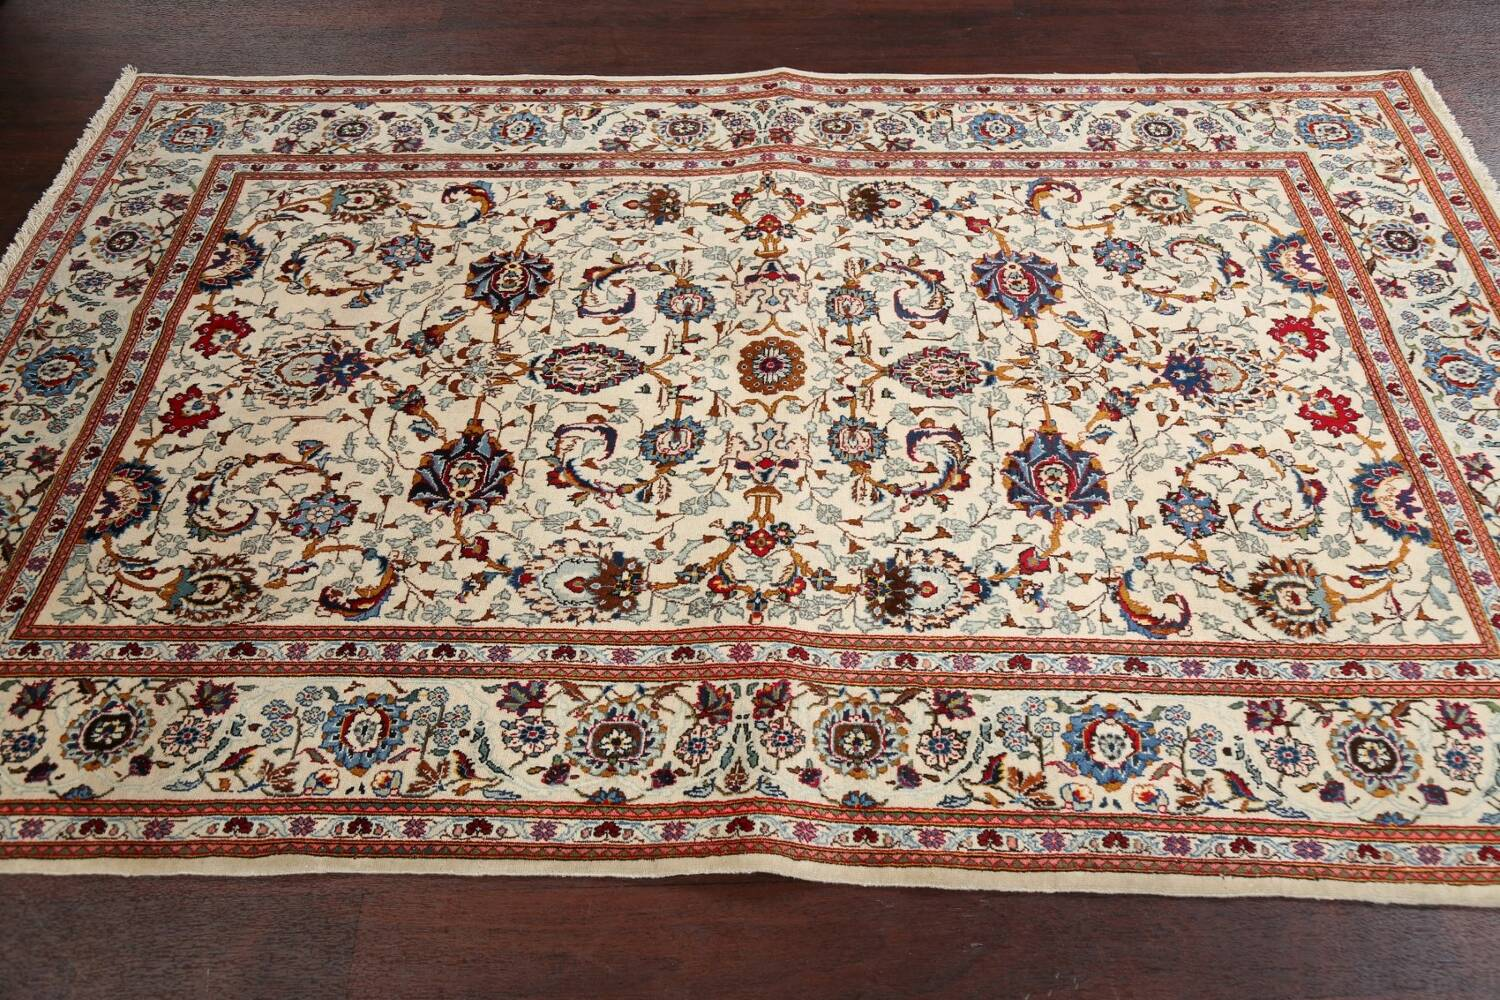 100% Vegetable Dye Floral Kashan Persian Area Rug 4x7 image 13